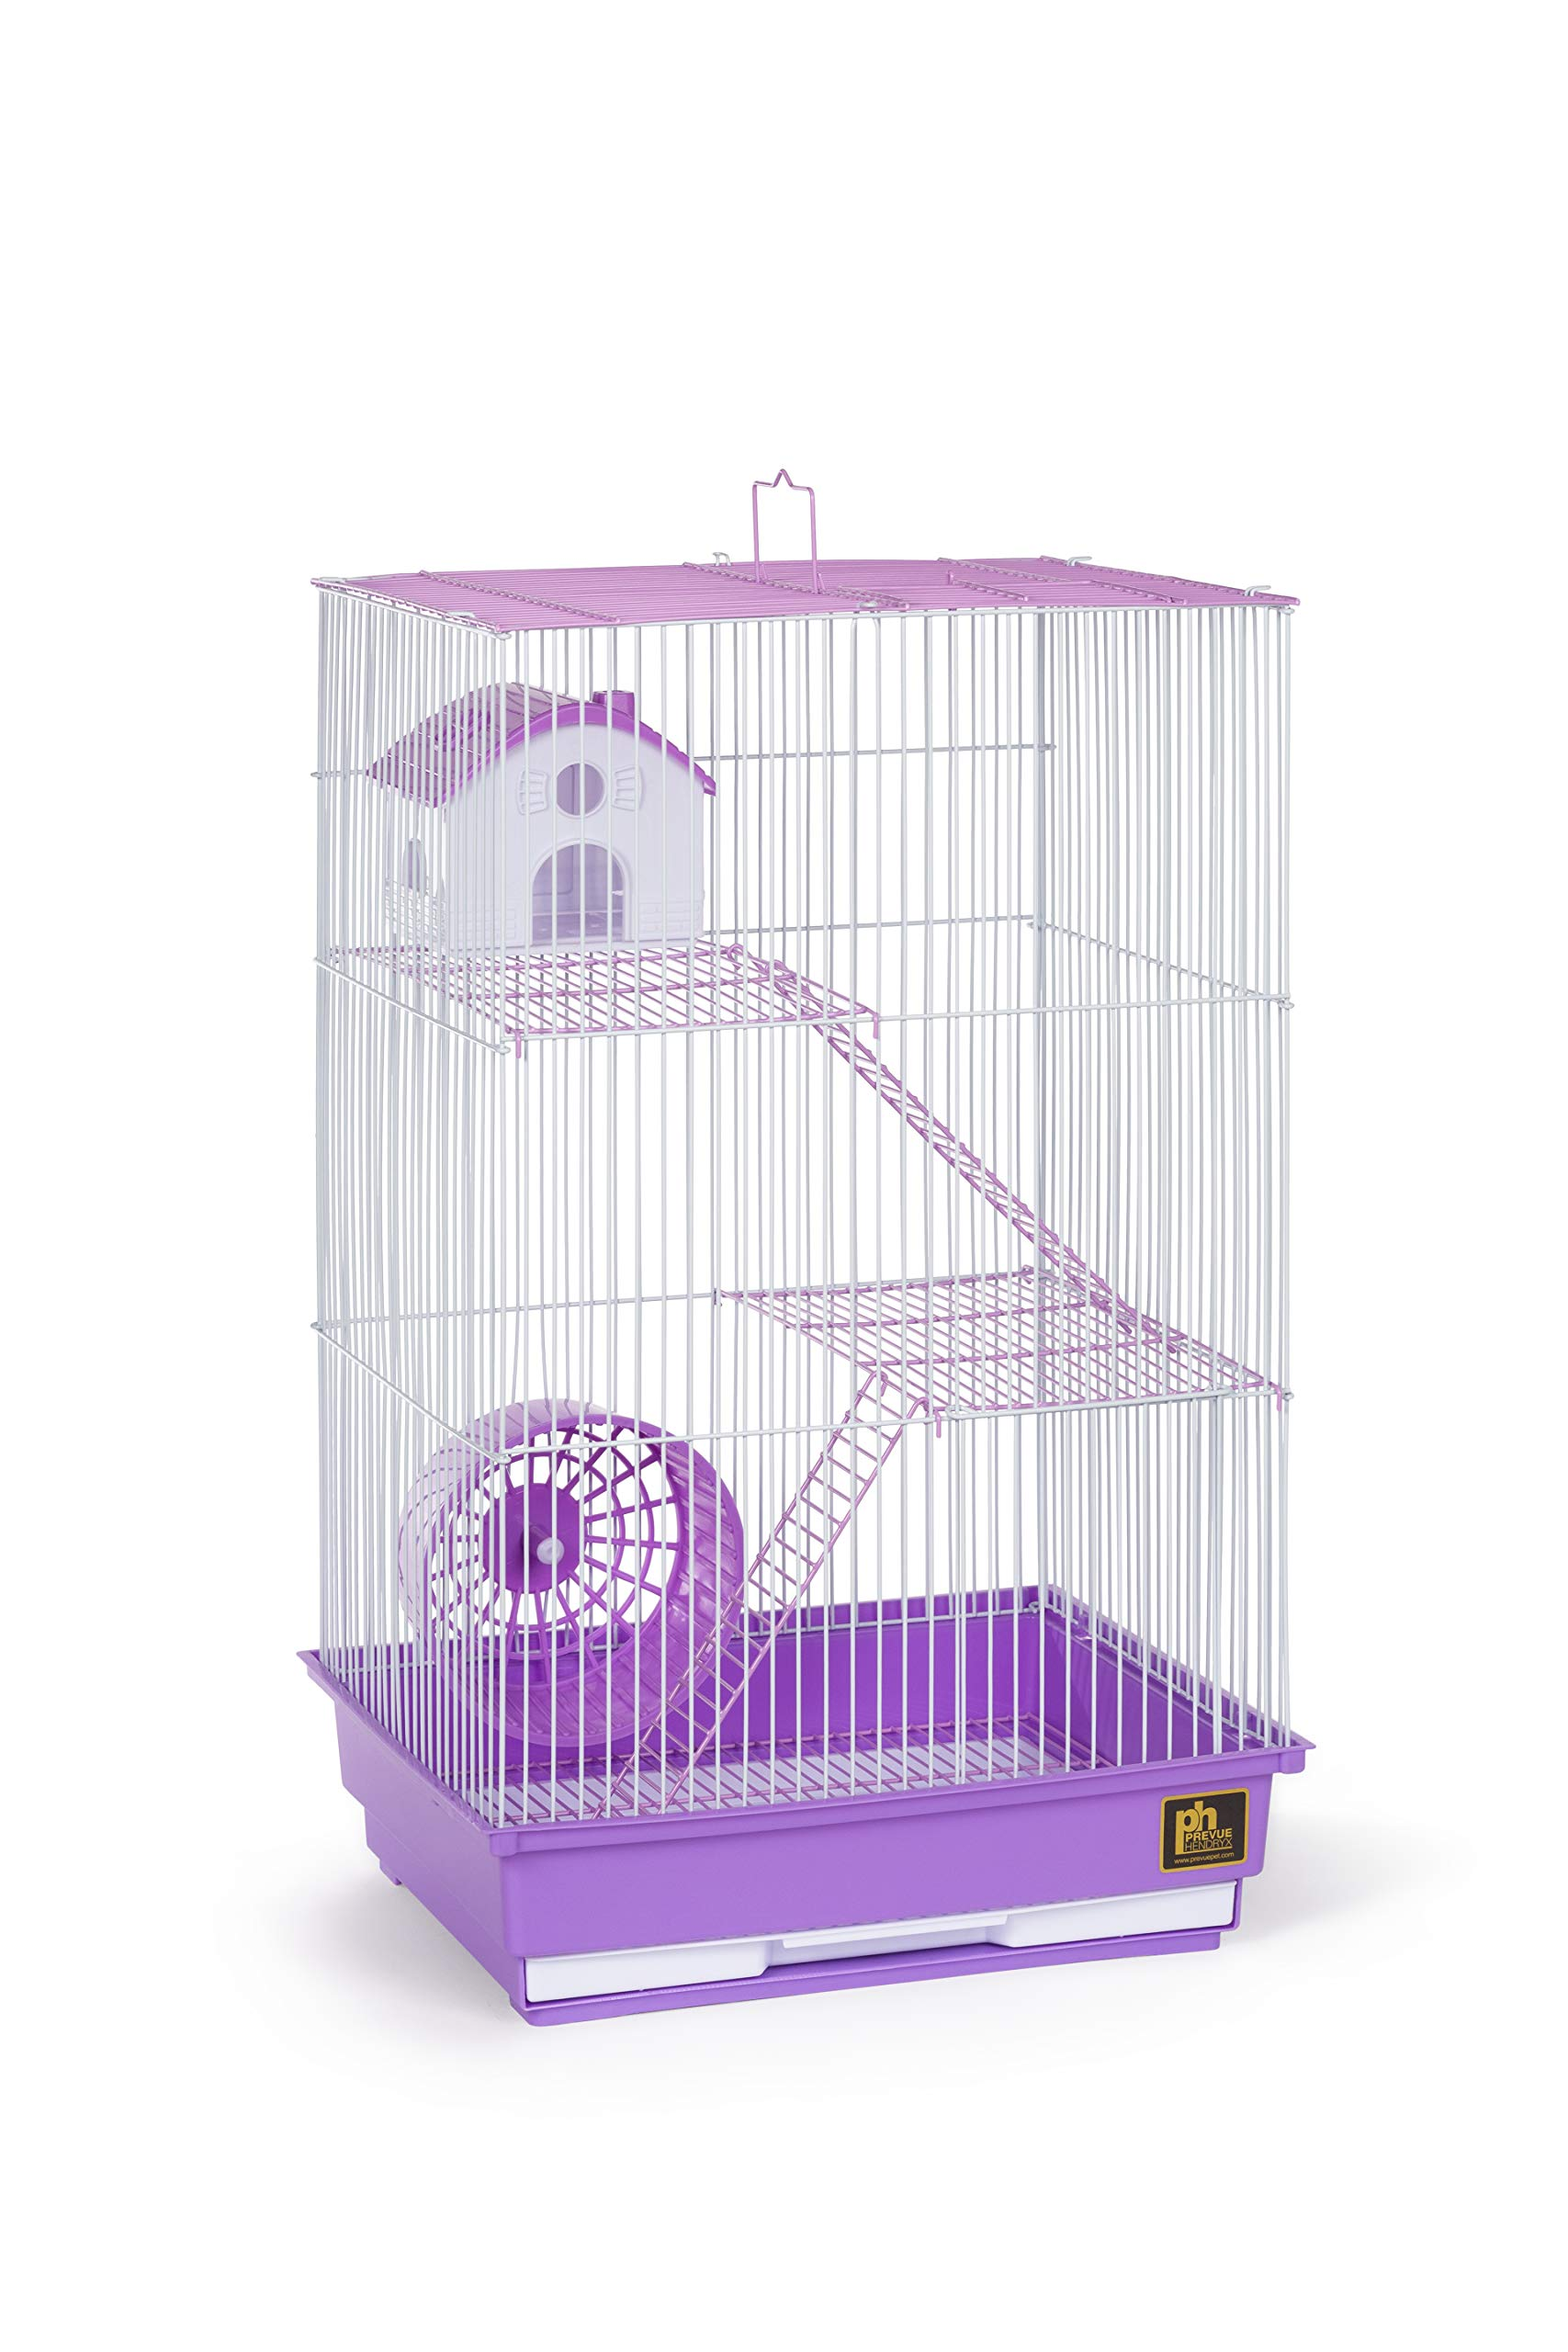 Prevue Pet Products Three-Story Hamster & Gerbil Cage Purple & White SP2030P